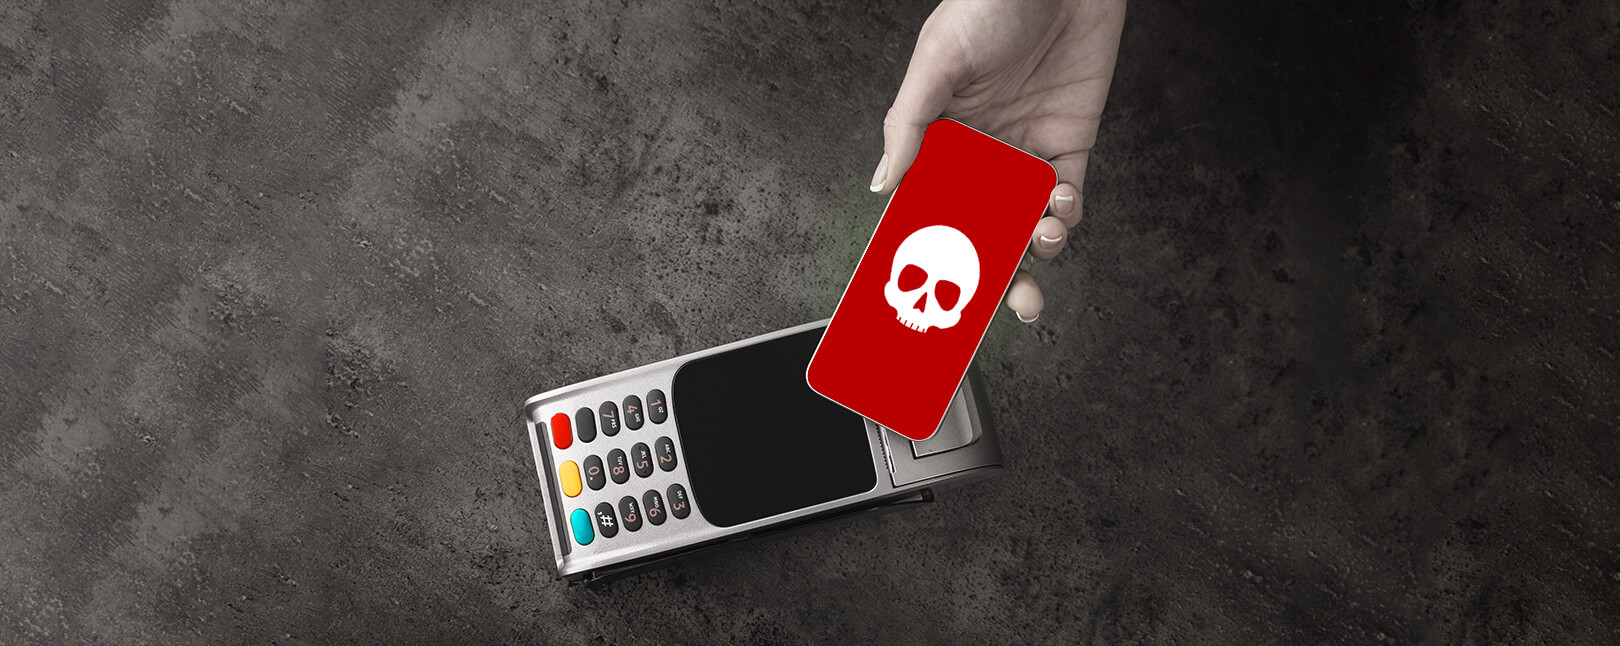 Contactless Payment Fraud